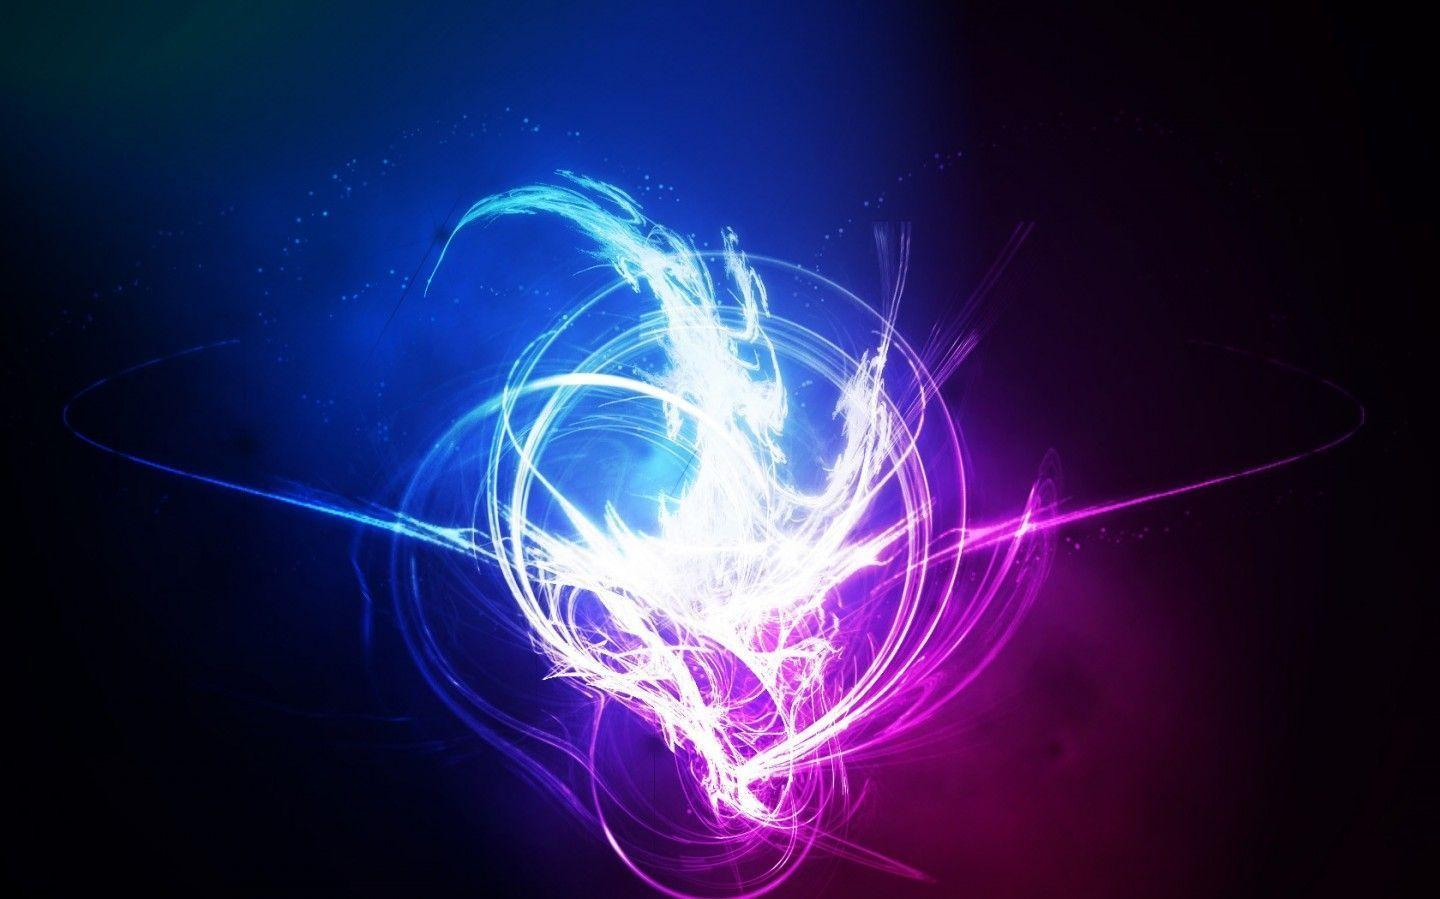 55 Neon Abstract Android Iphone Desktop Hd Backgrounds Wallpapers 1080p 4k 1440x899 2020